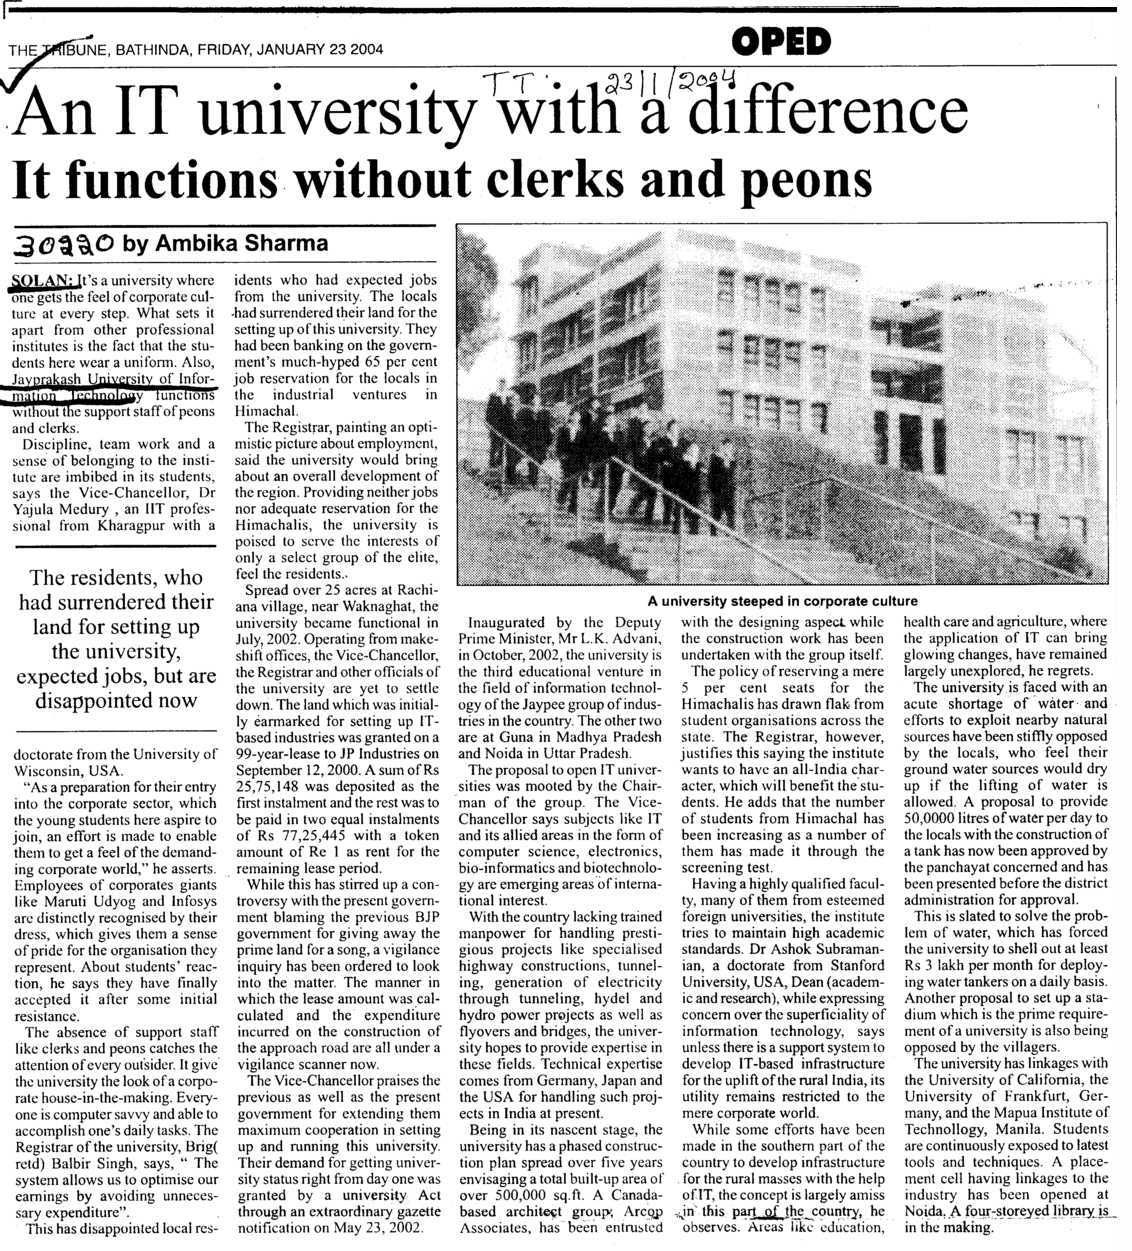 An IT University with a difference (Jaypee University of Information Technology (JUIT))